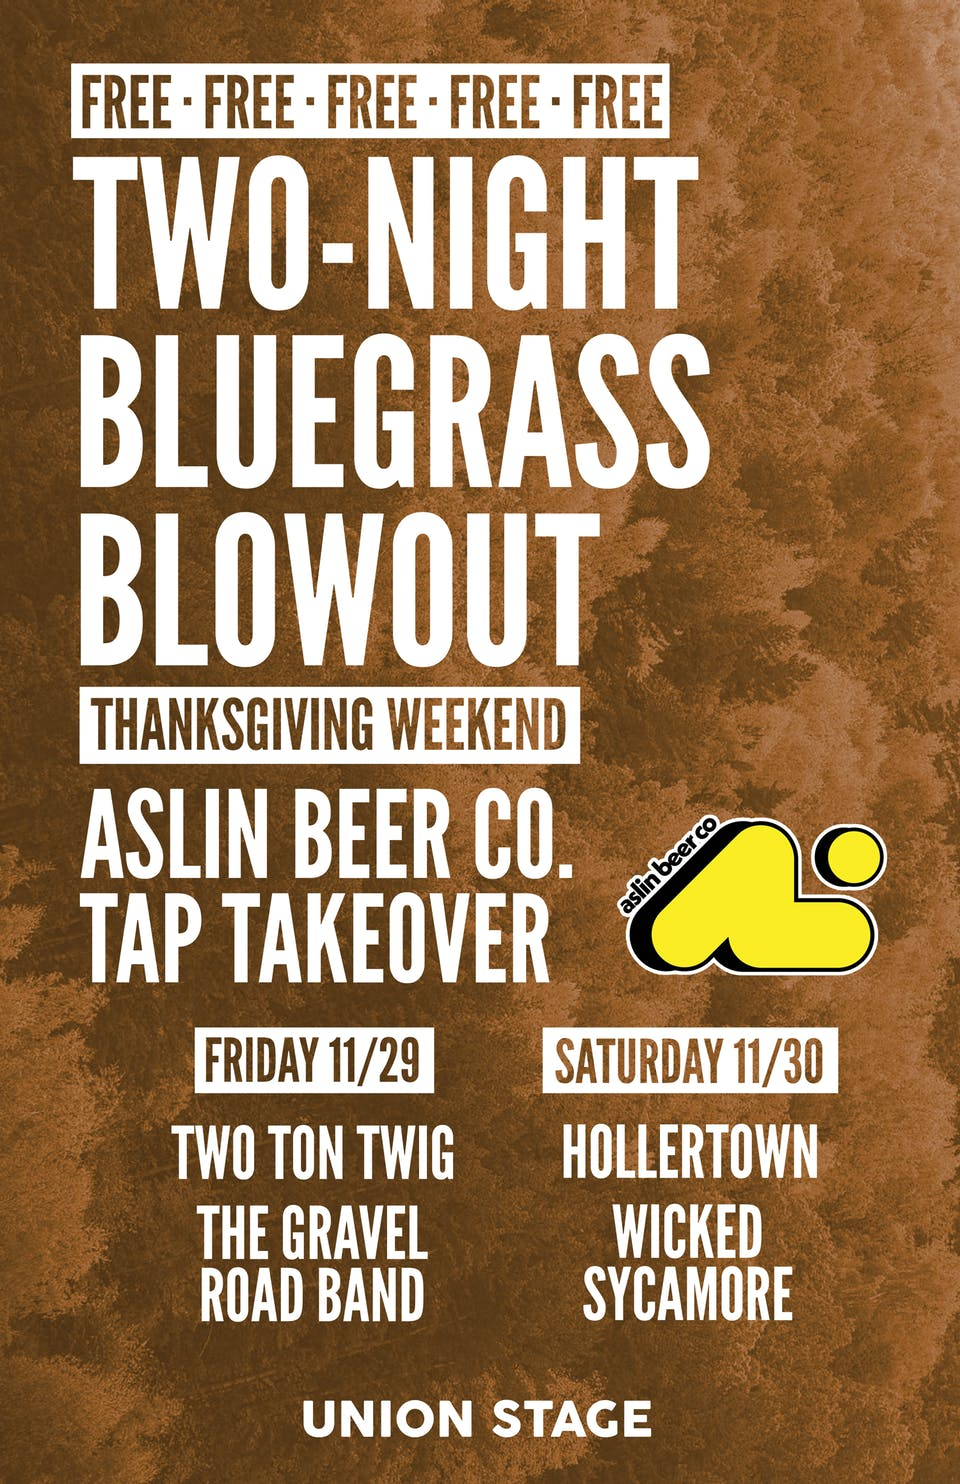 Free Bluegrass Blowout Night Two feat. Hollertown + Wicked Sycamore